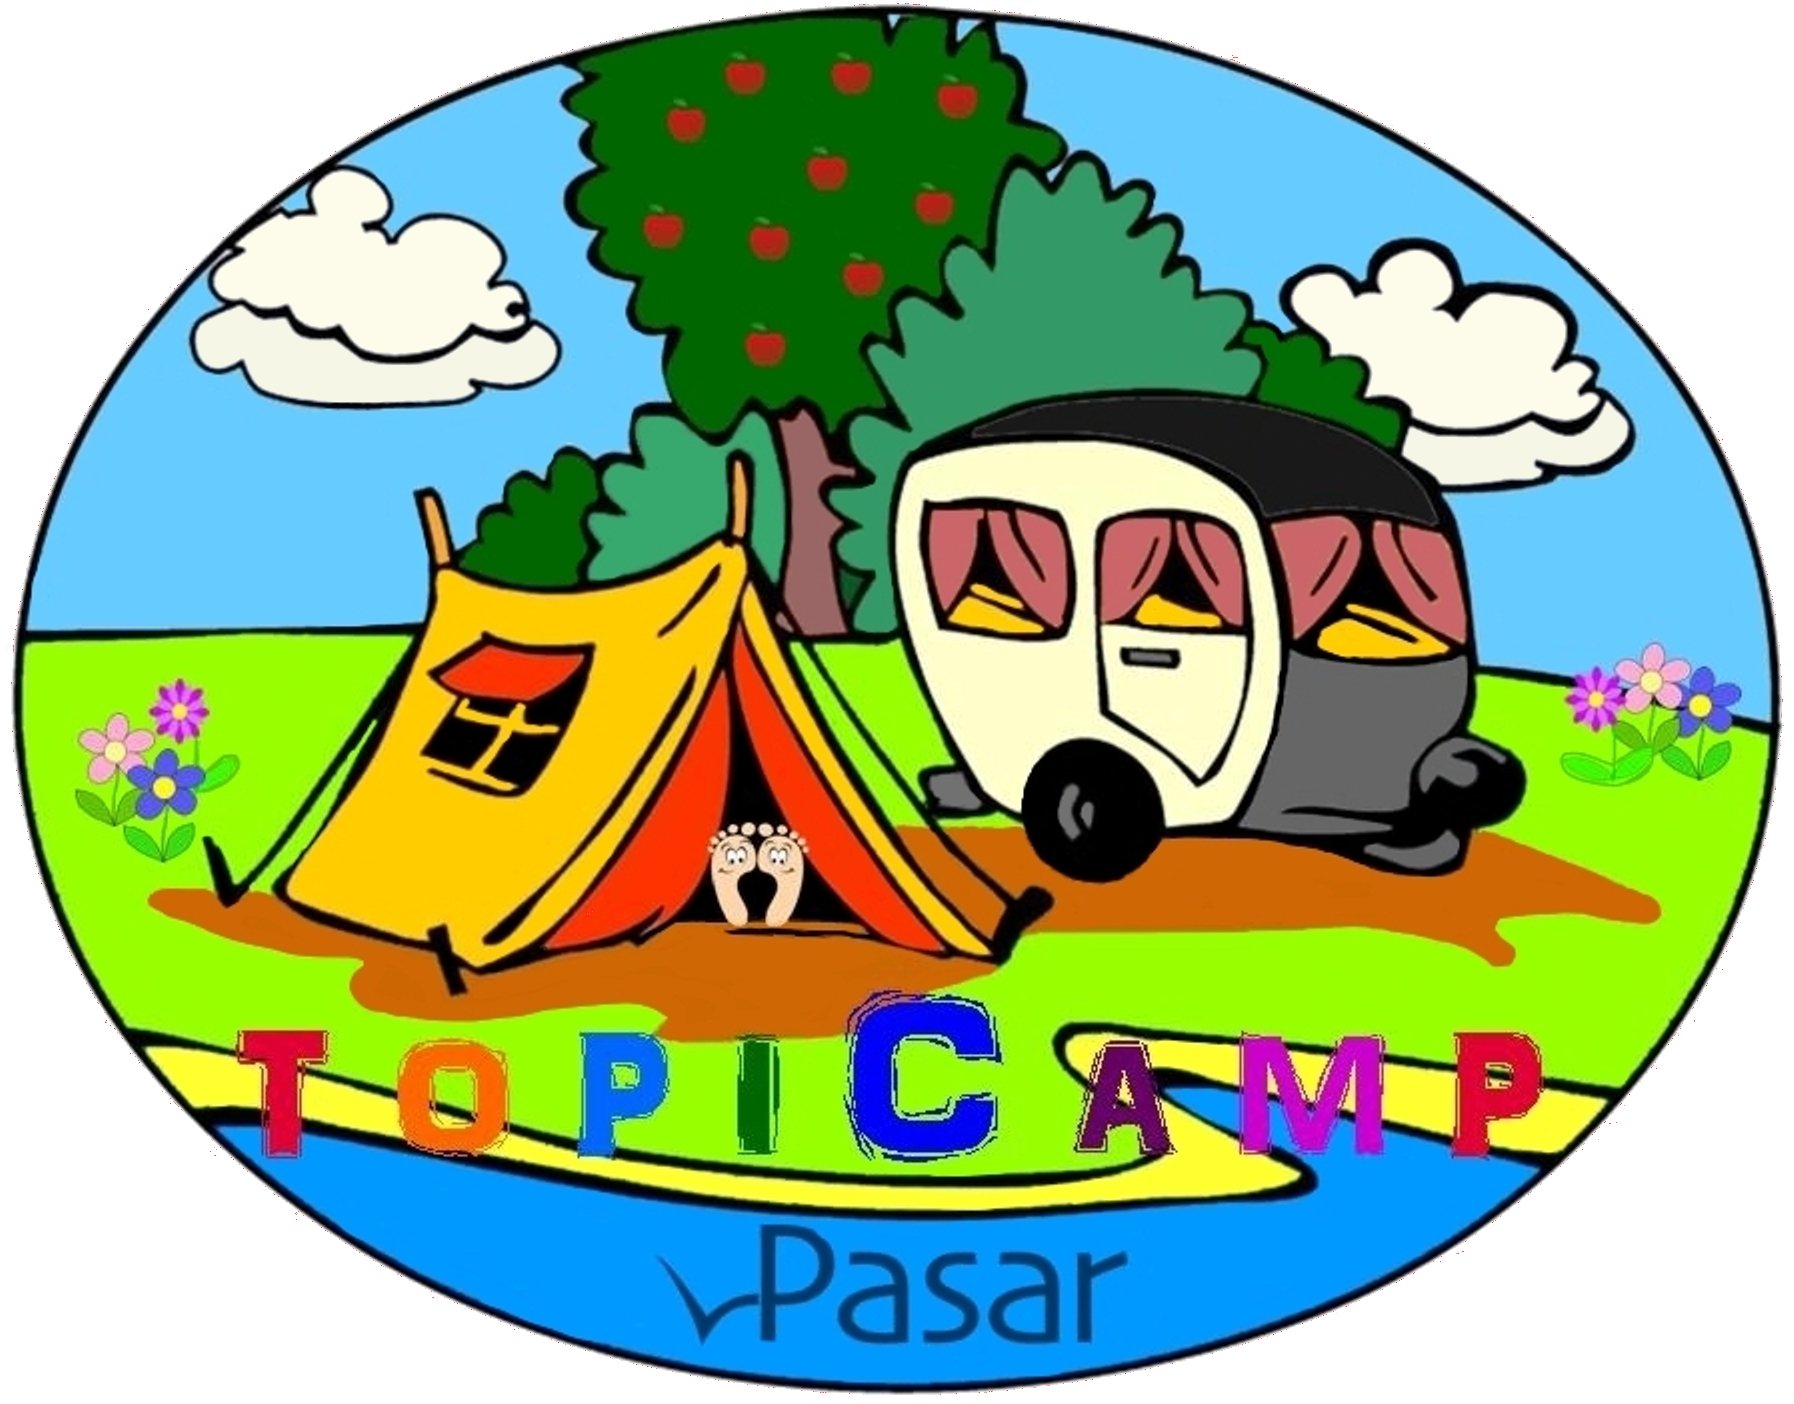 logo topi camp